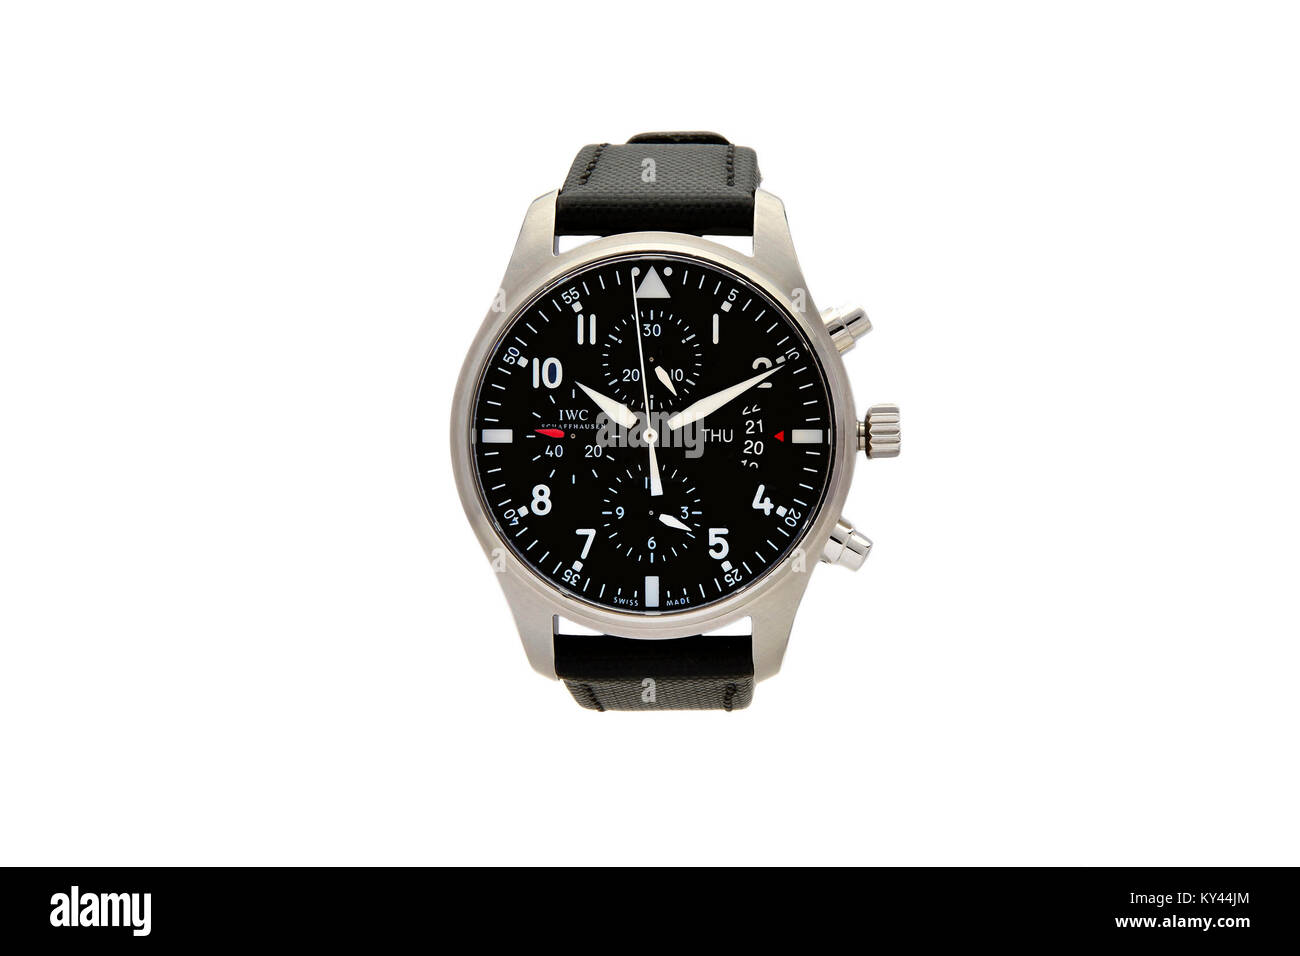 IWC Chronograph stainless steel man's watch with black face and leather wrist band - Stock Image